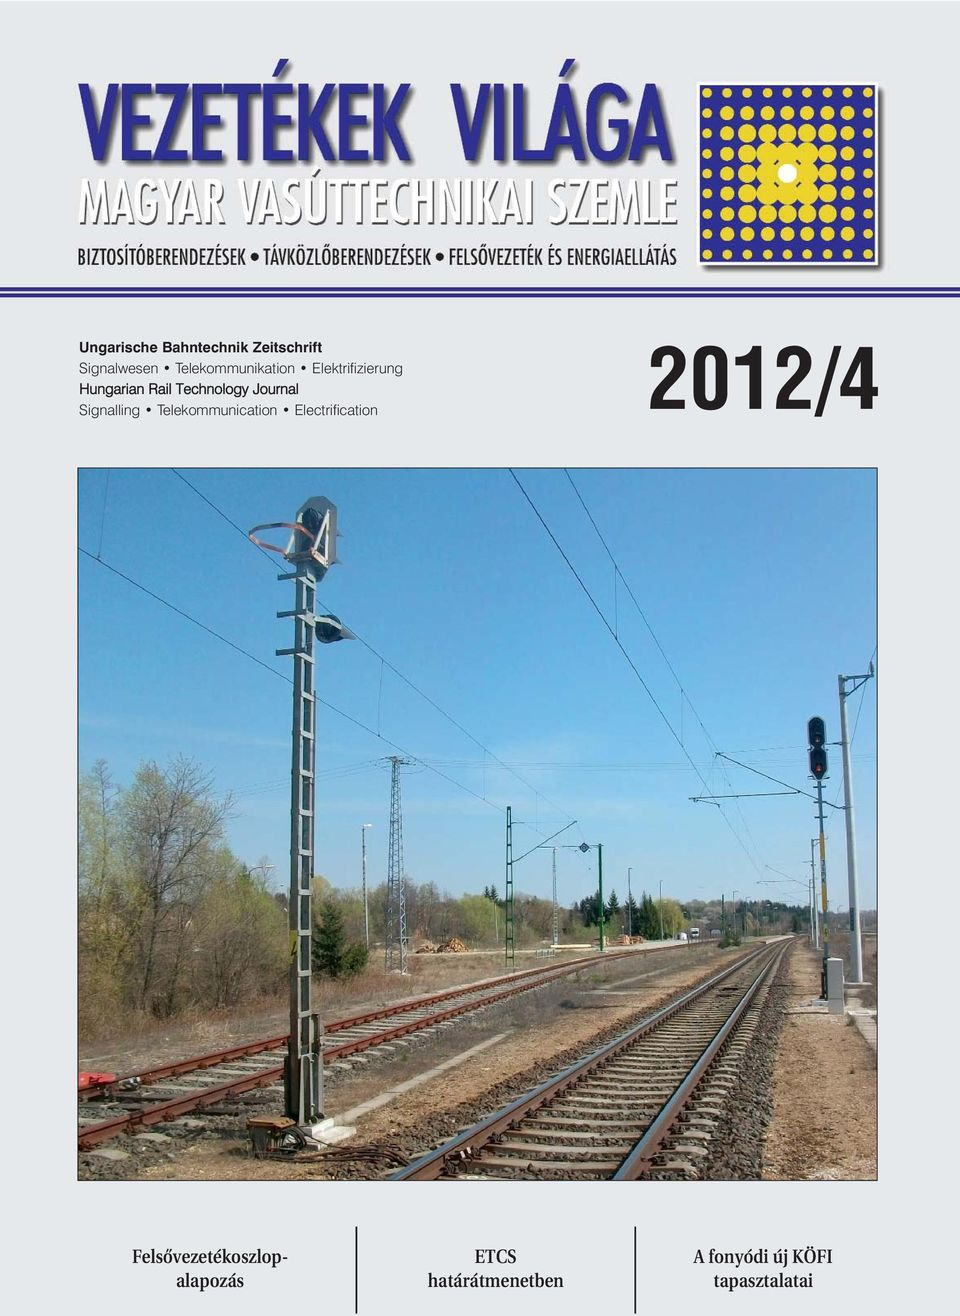 Journal Signalling Telekommunication Electrification 2012/4